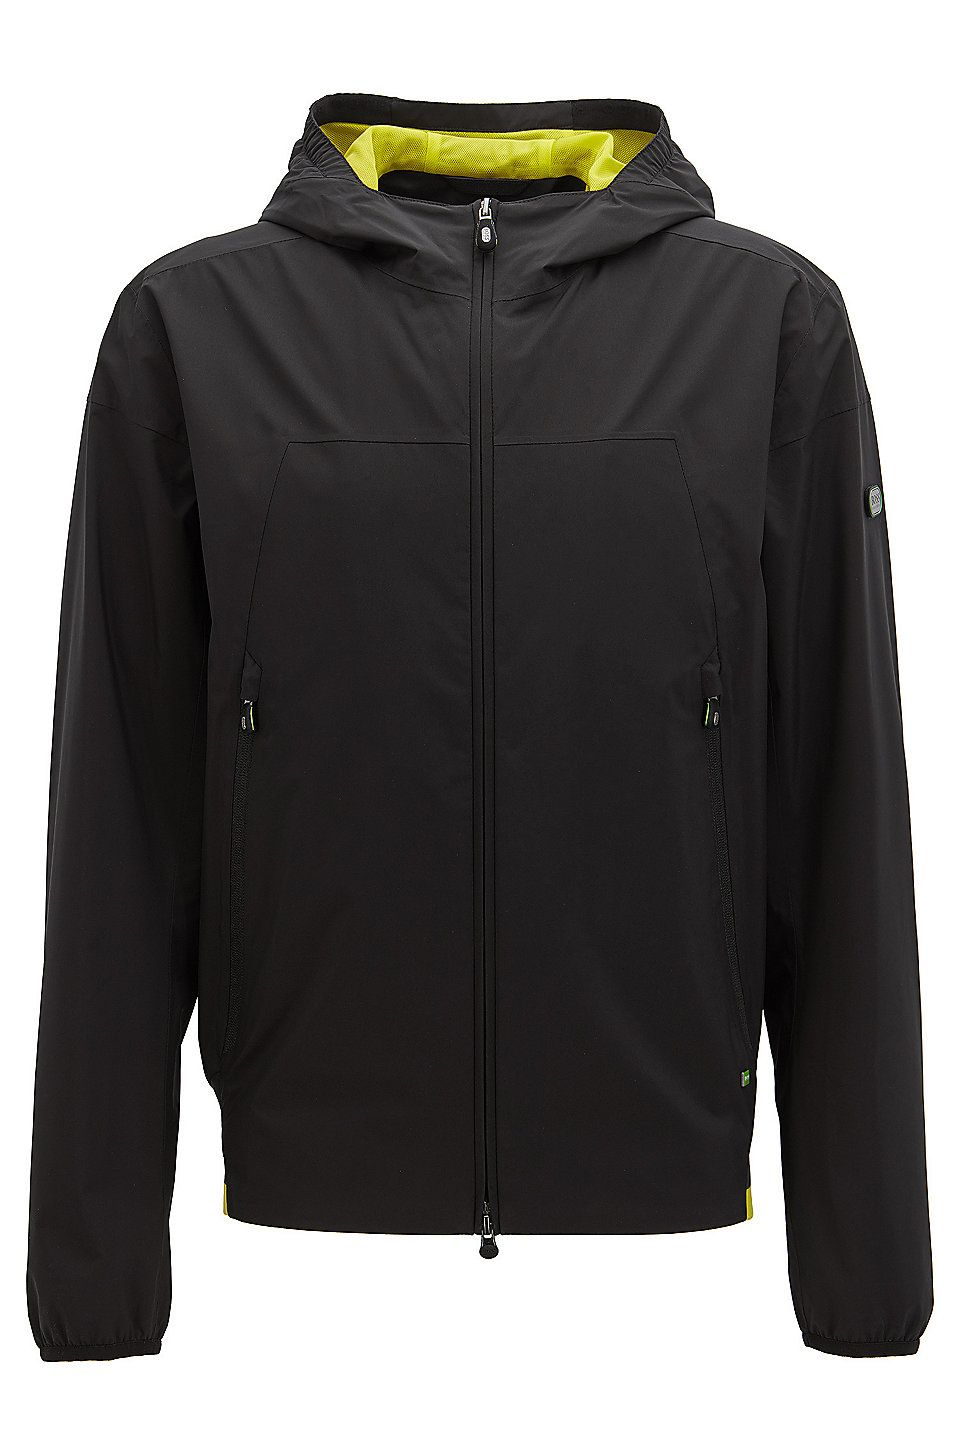 Hugo Boss Waterproof Jacket In Soft Touch Technical Fabric Black Casual Jackets From Boss For Men In The Official Hug Waterproof Jacket Jackets Casual Jacket [ 1456 x 960 Pixel ]